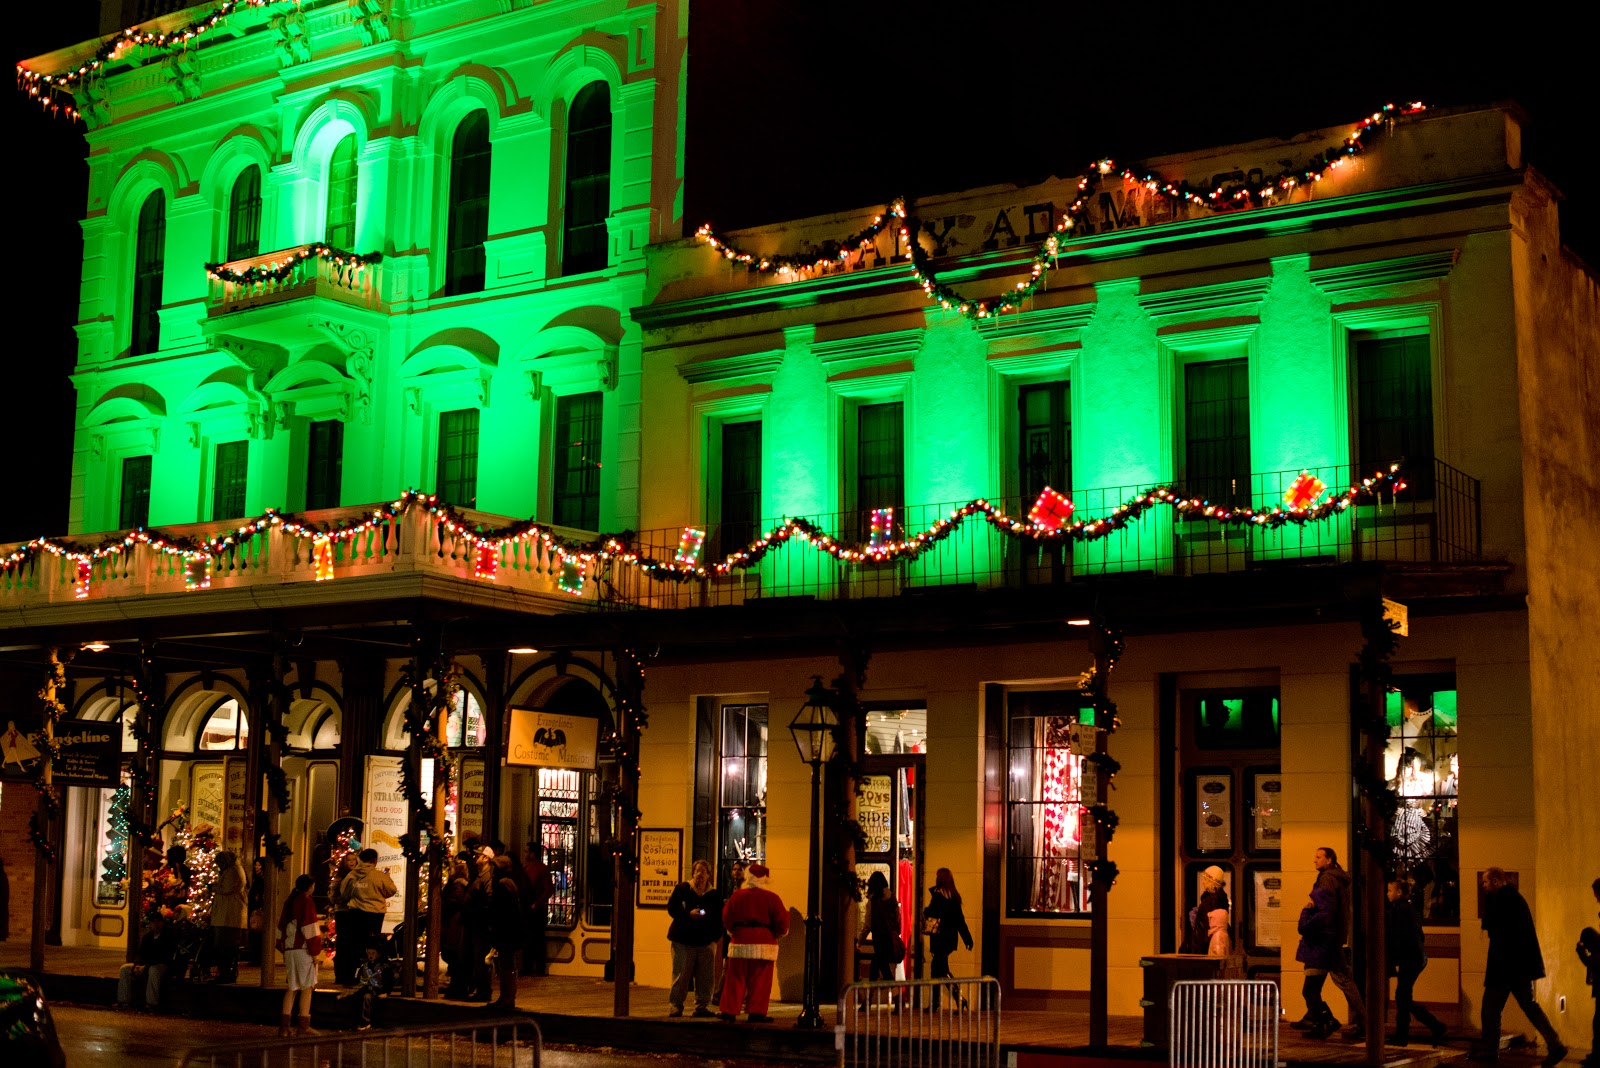 Domestic Fashionista: Christmas in Old Town Sacramento